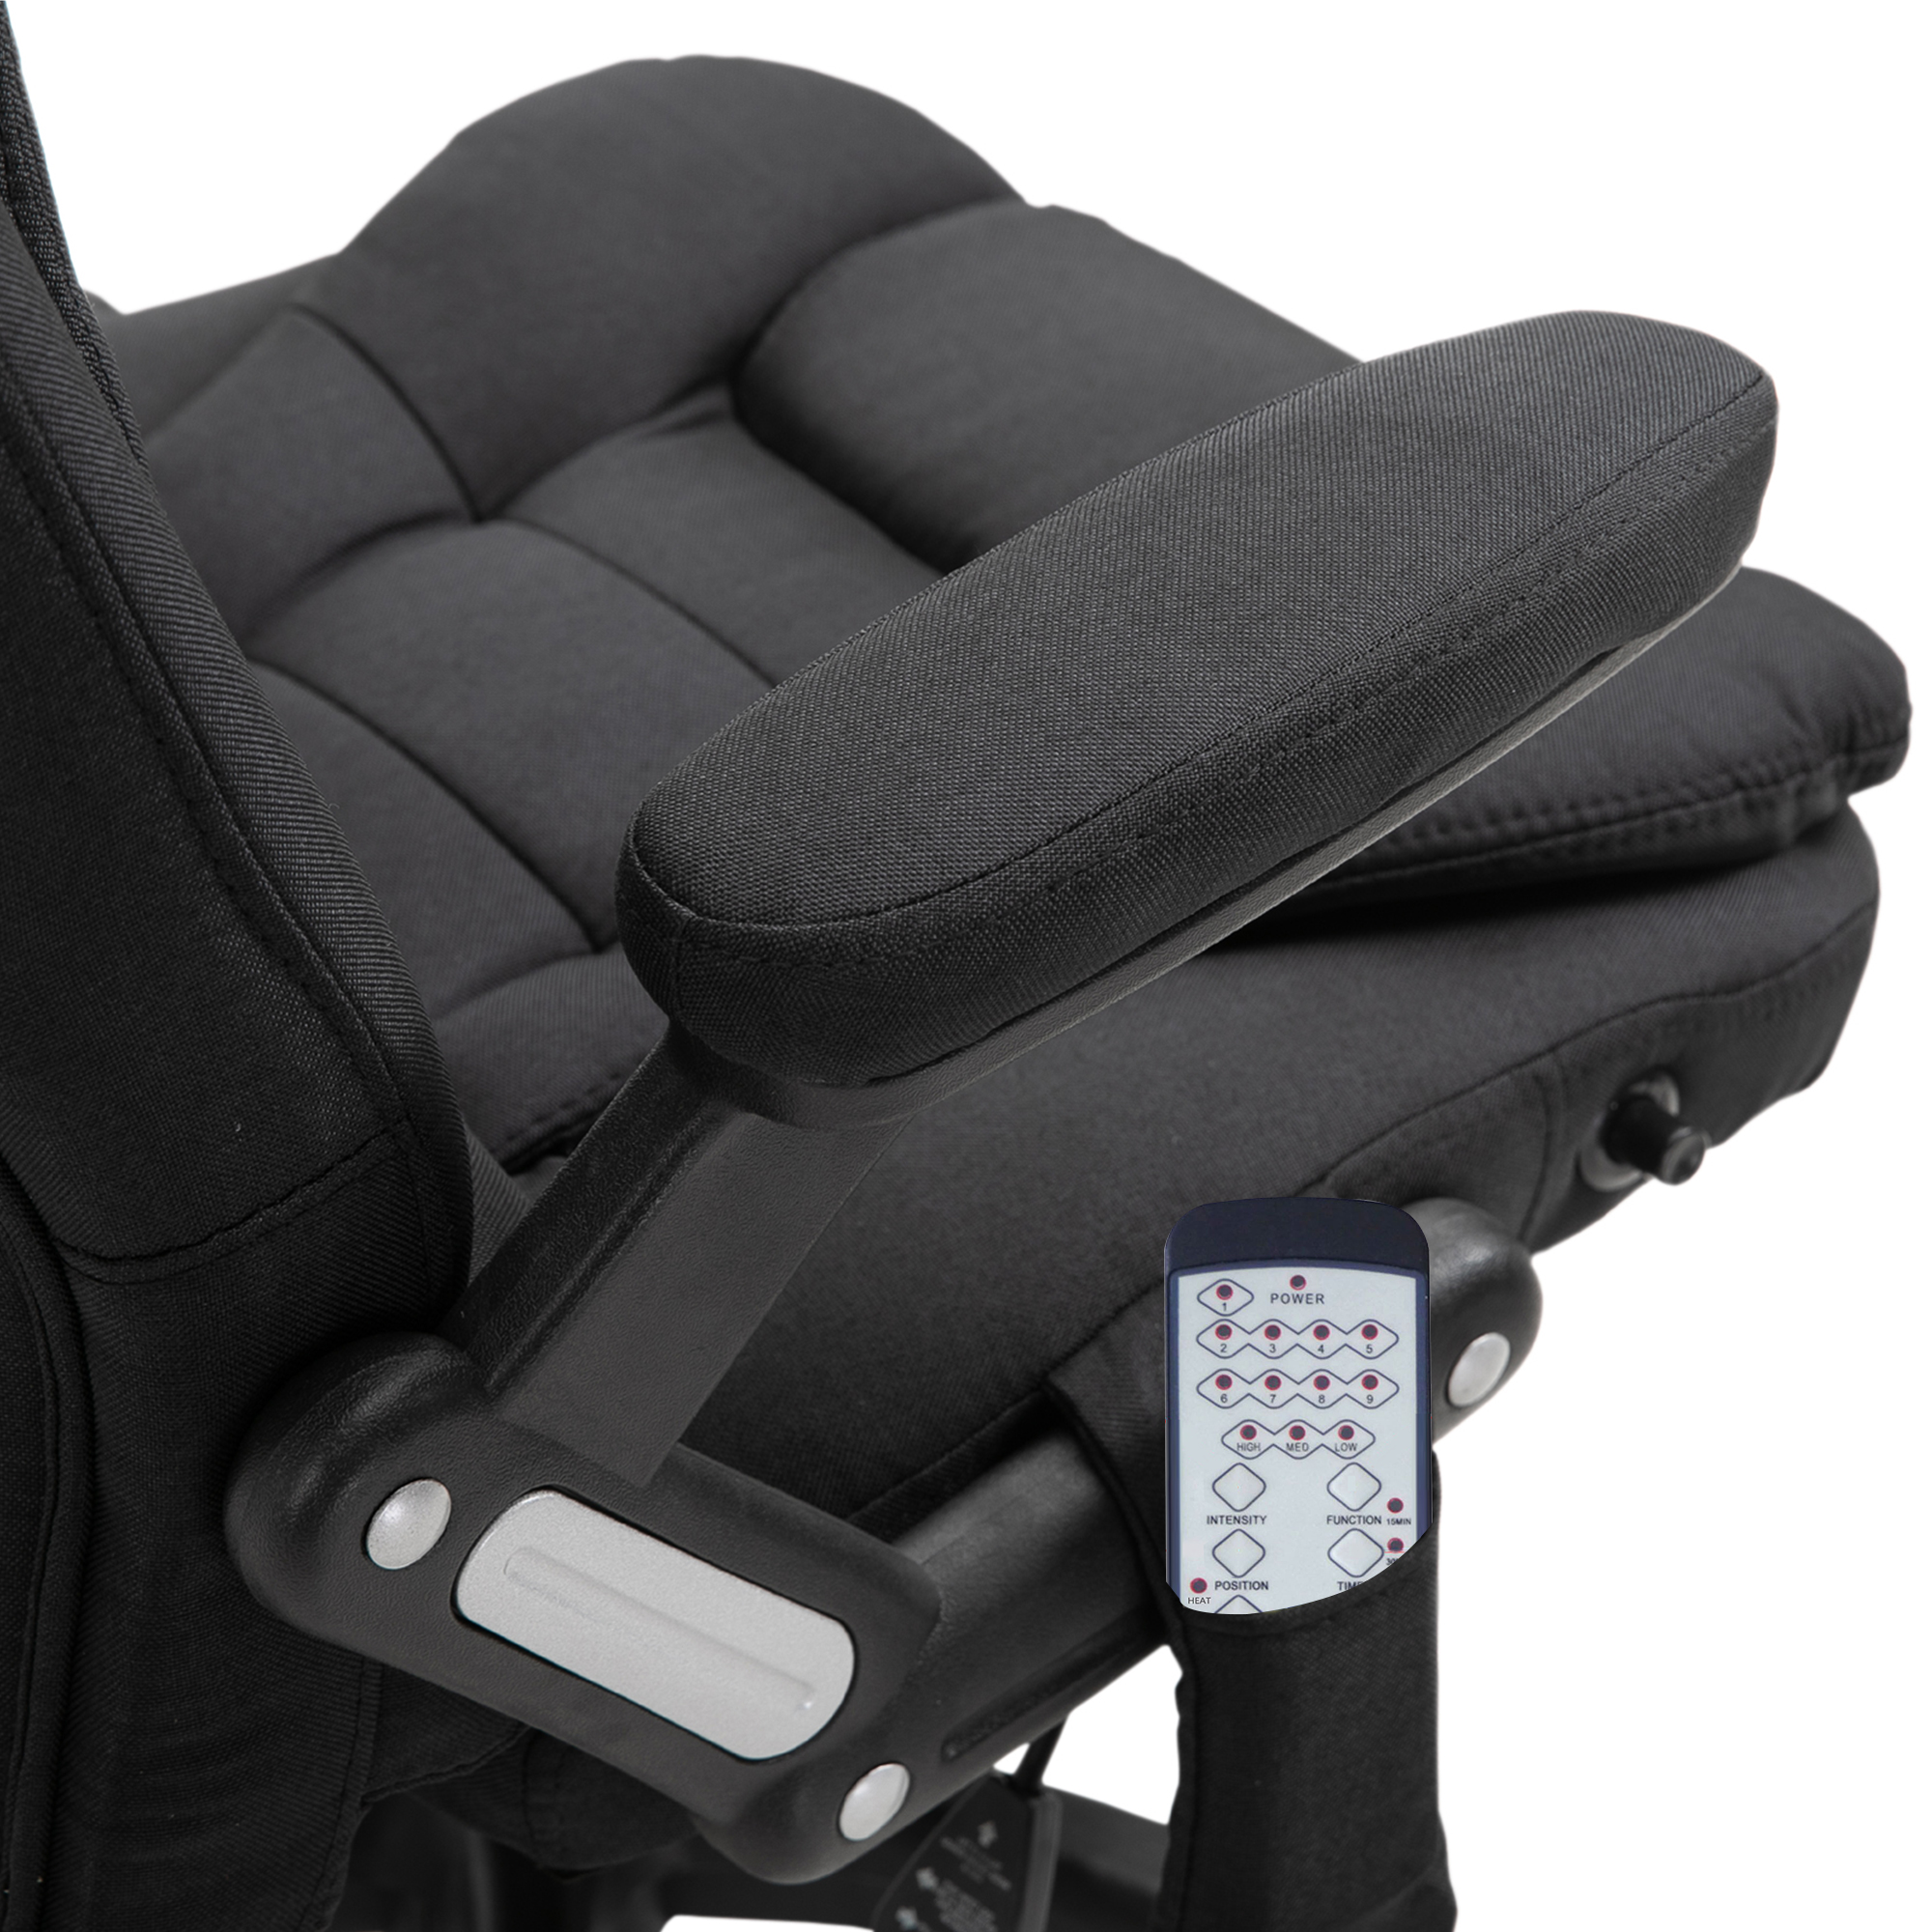 thumbnail 7 - Executive Reclining Chair 130°w/6 Heating Massage Points Relaxing Headrest